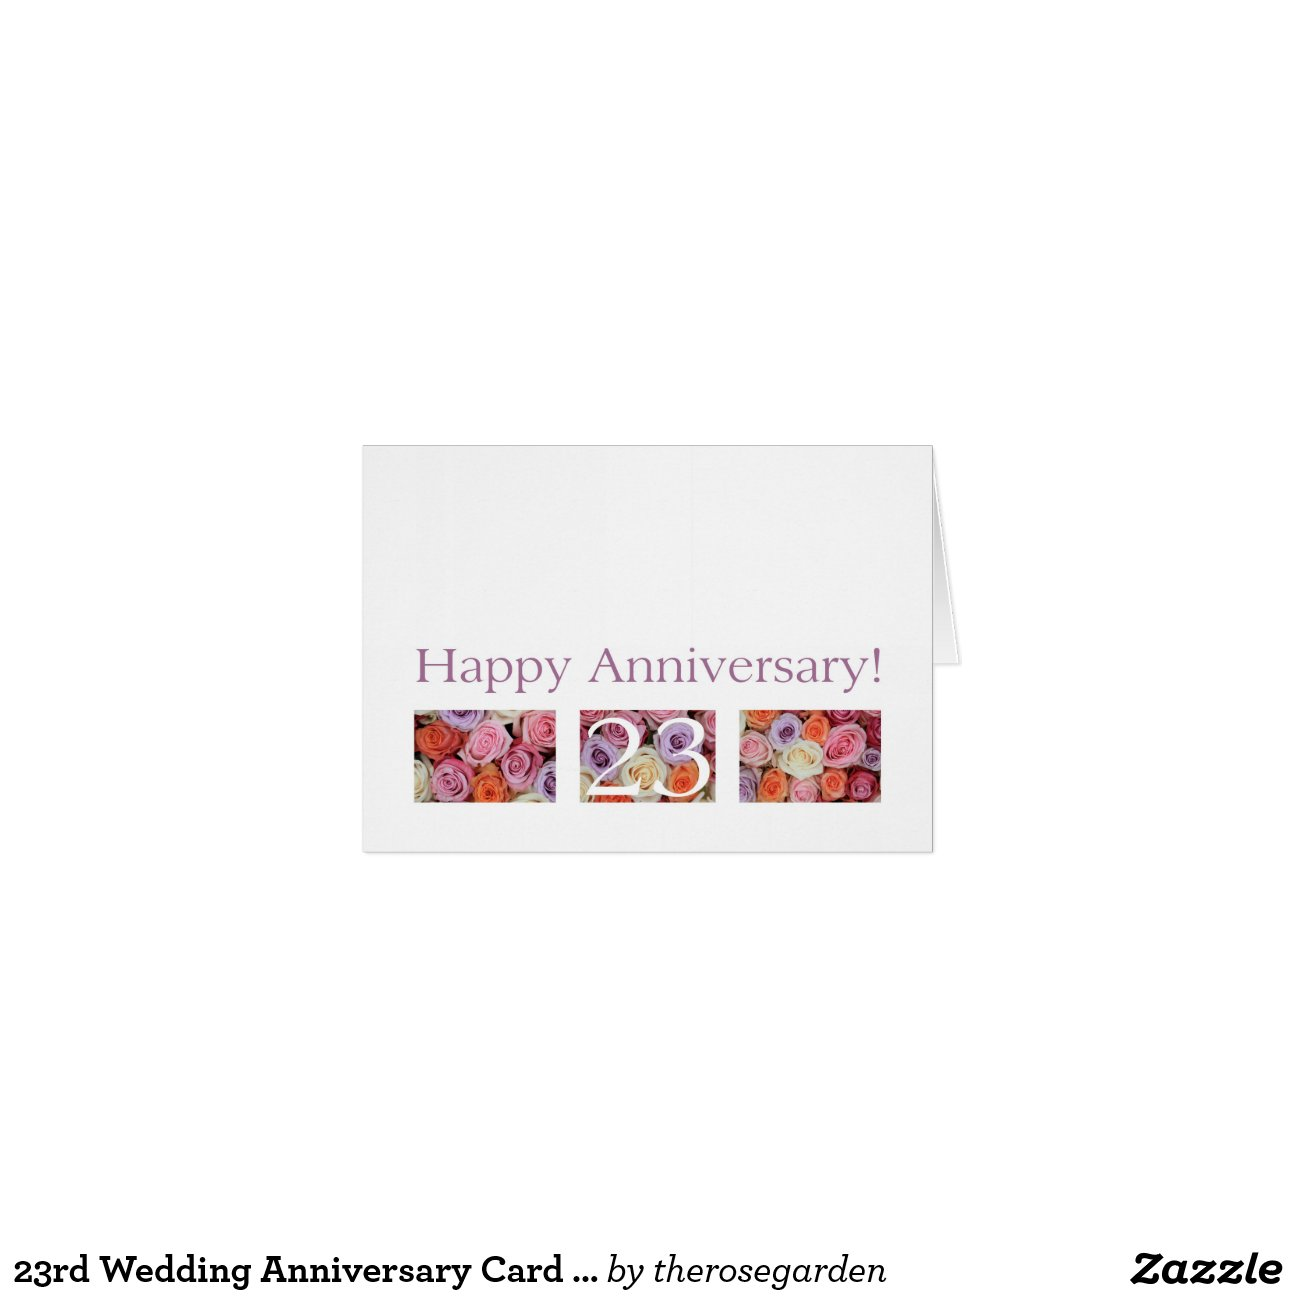 23rd Wedding Anniversary Gift Ideas: 23rd Wedding Anniversary Card Pastel Roses